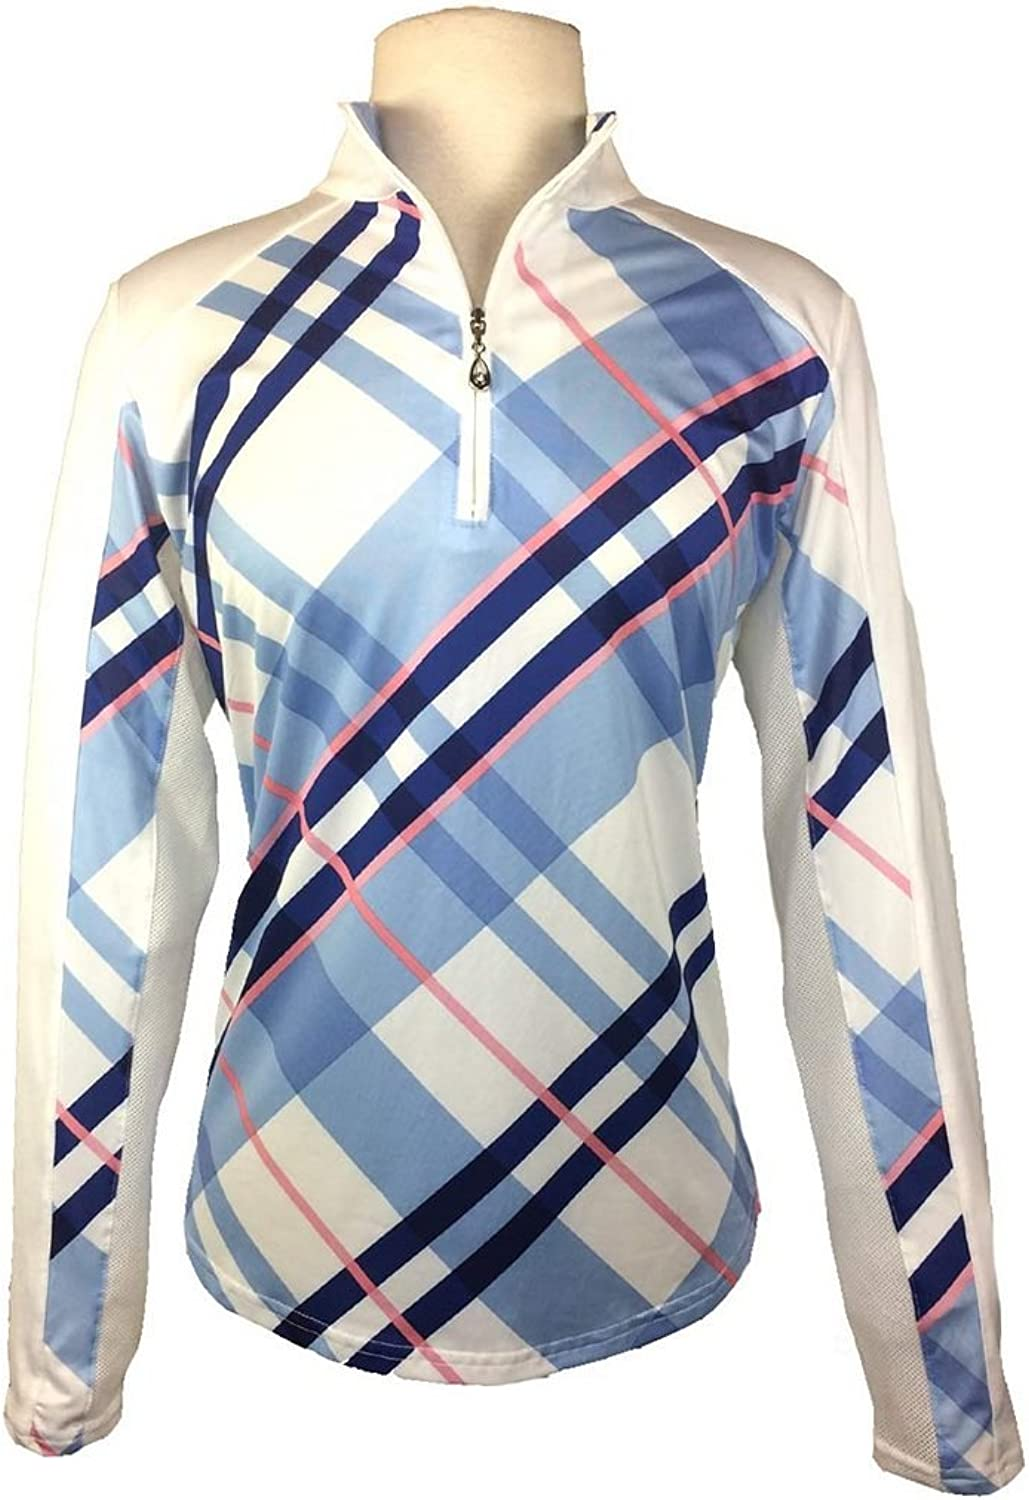 SanSoleil UV 50 SolCool Print Zip Mock Top with Vent Back Womens